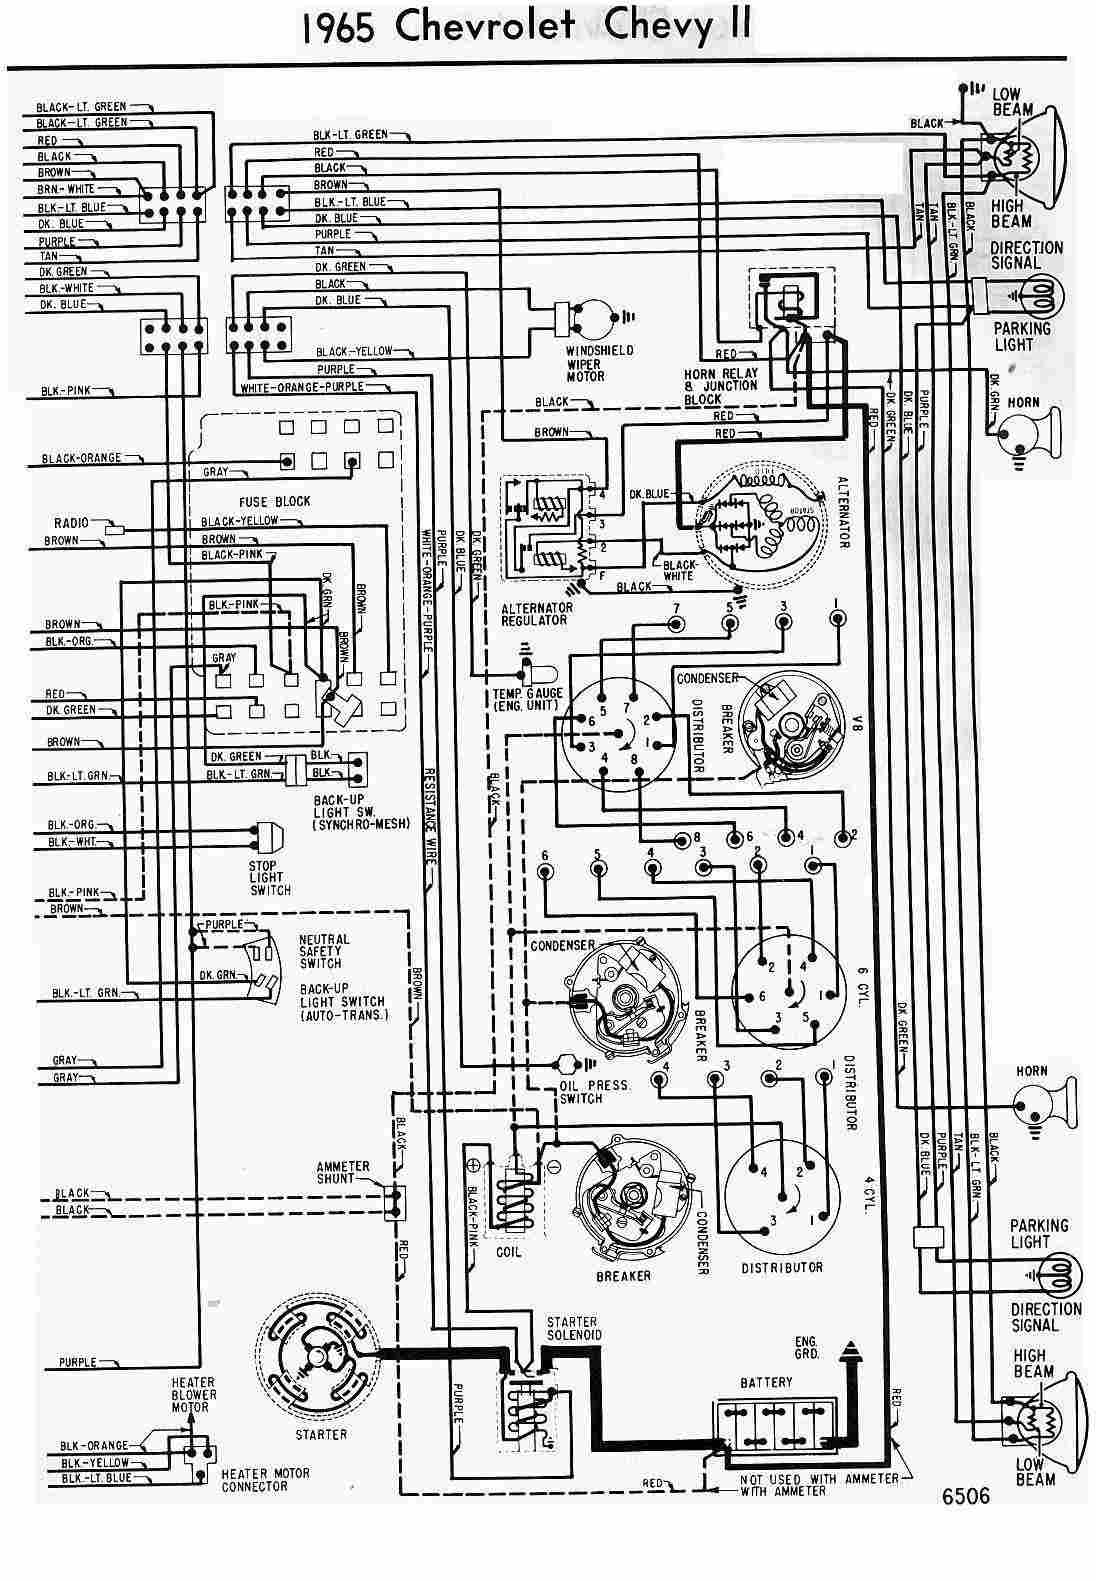 small resolution of 1959 chevrolet wiring diagram impala convertiblejpeg wiring diagrams 2007 chevy impala ignition wiring diagram 1967 chevy impala wiring harness diagram